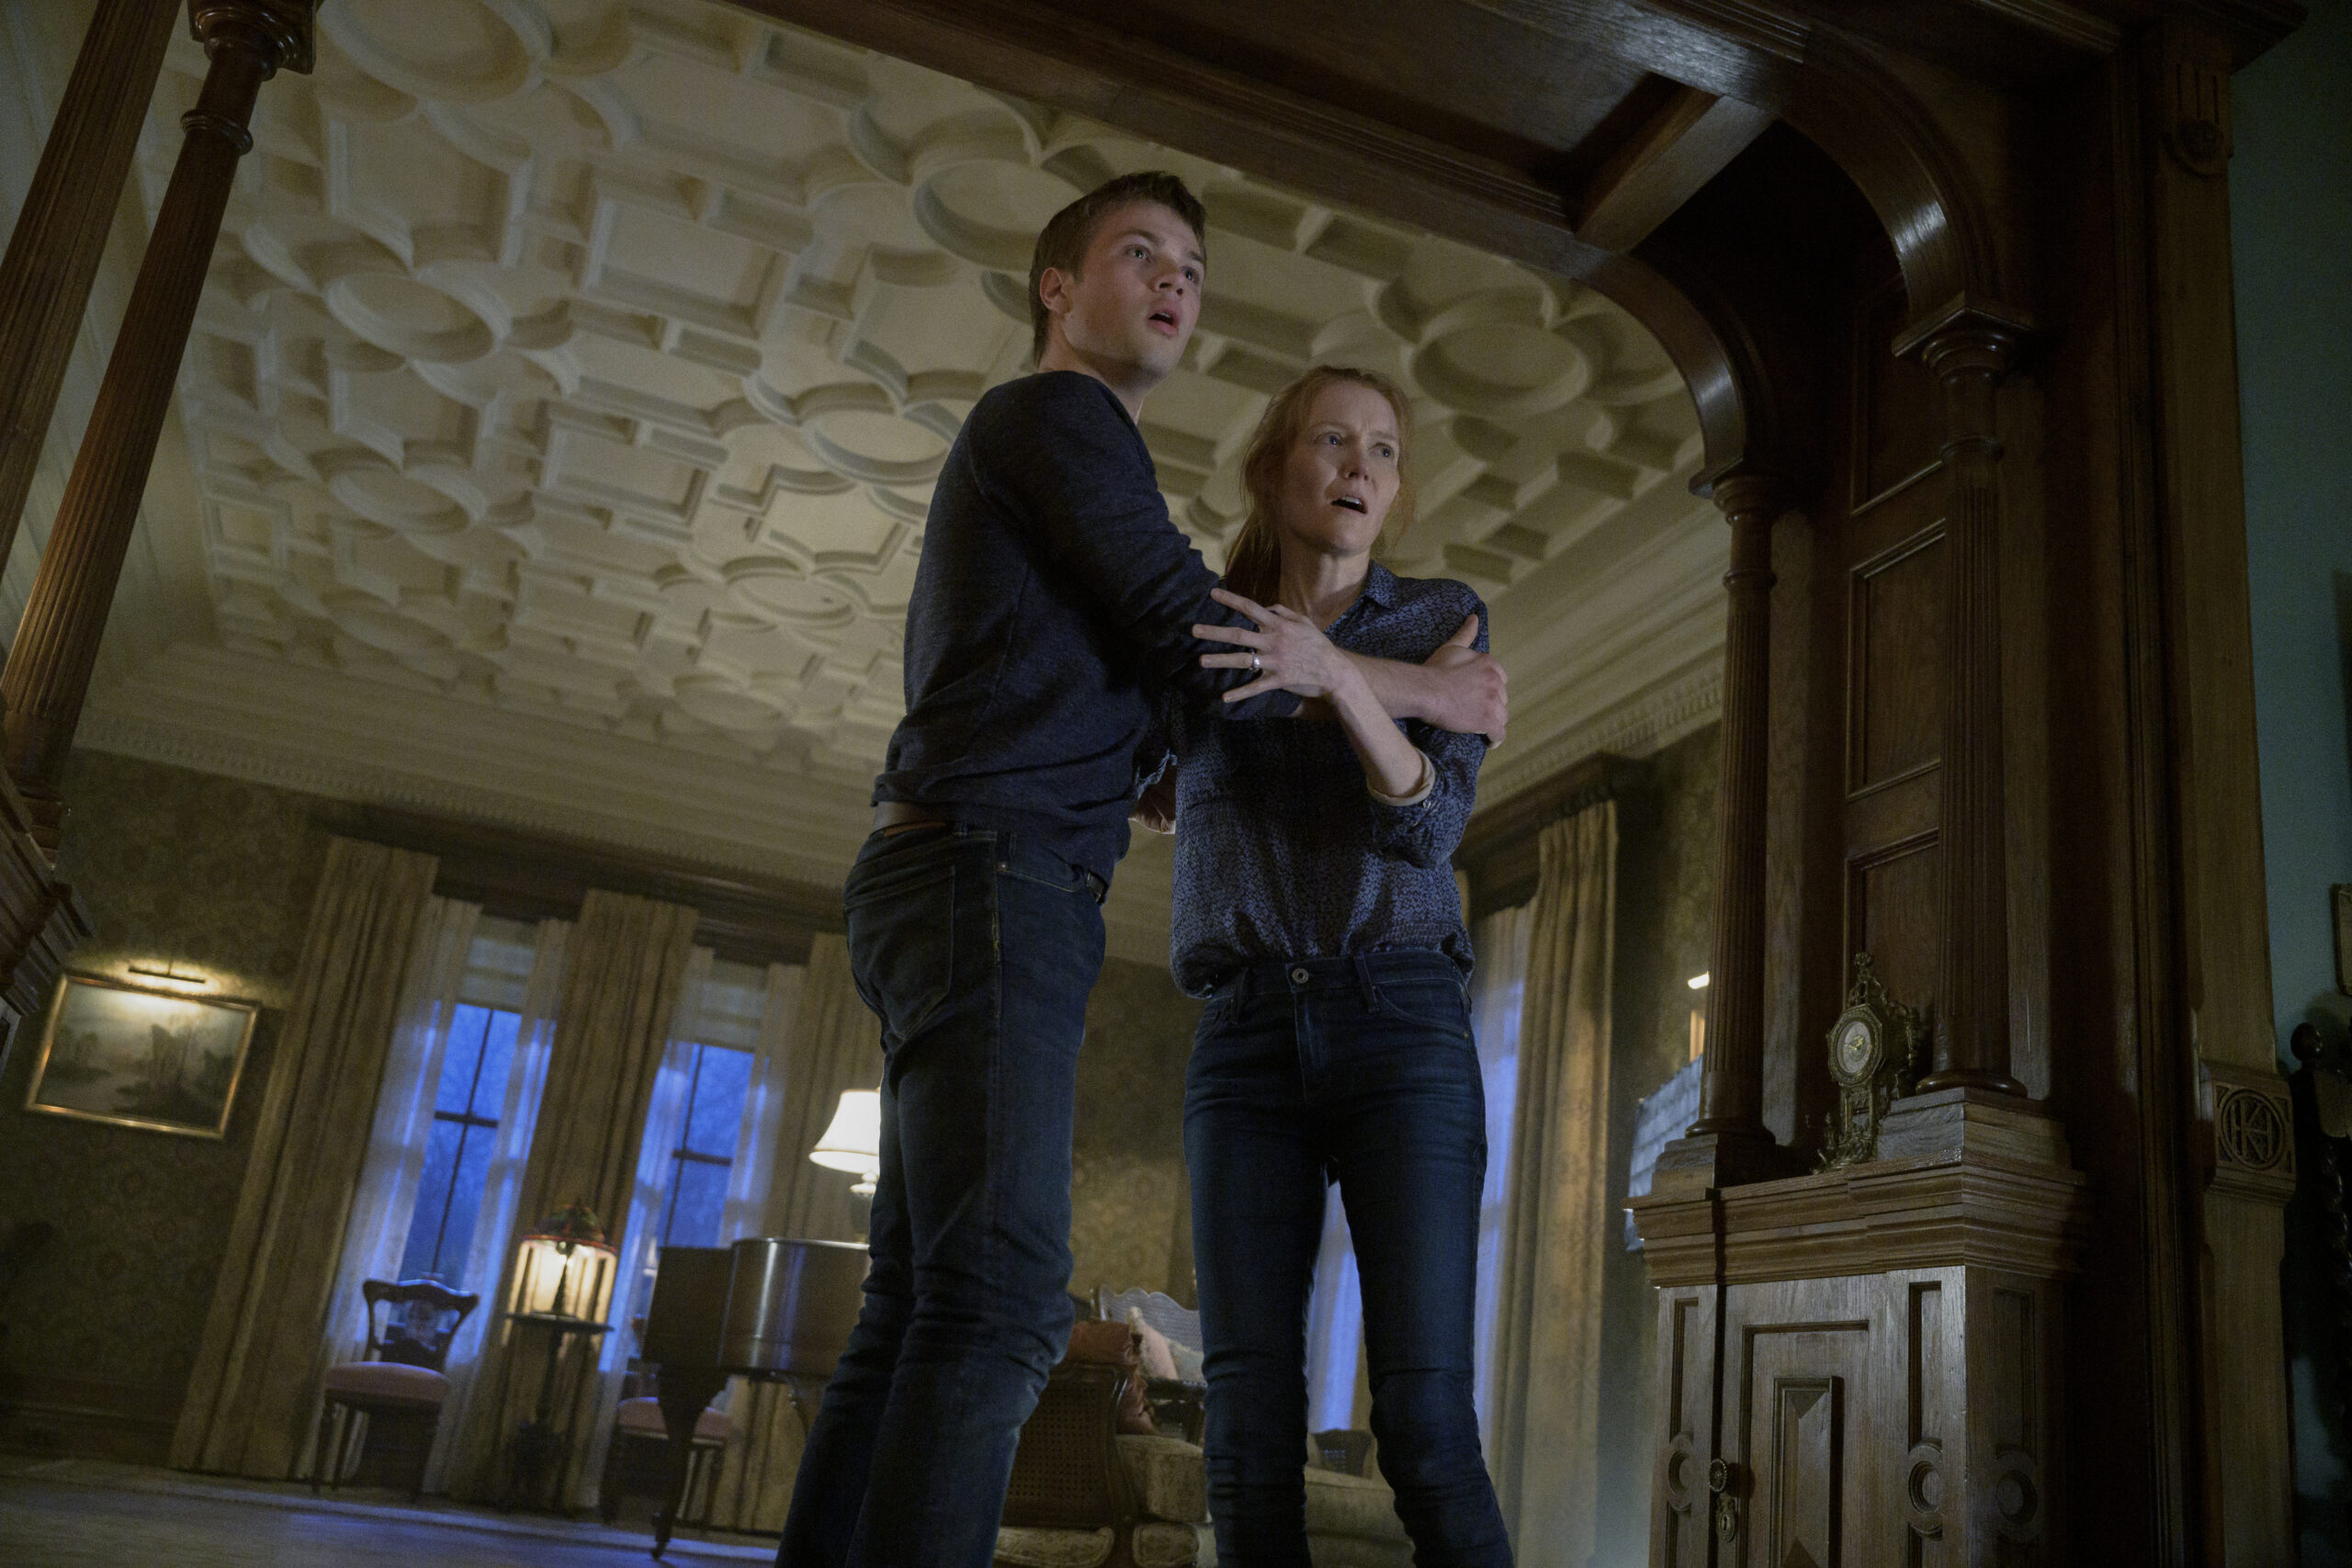 Connor Jessup as Tyler, Darby Stanchfield as Nina in Locke and Key